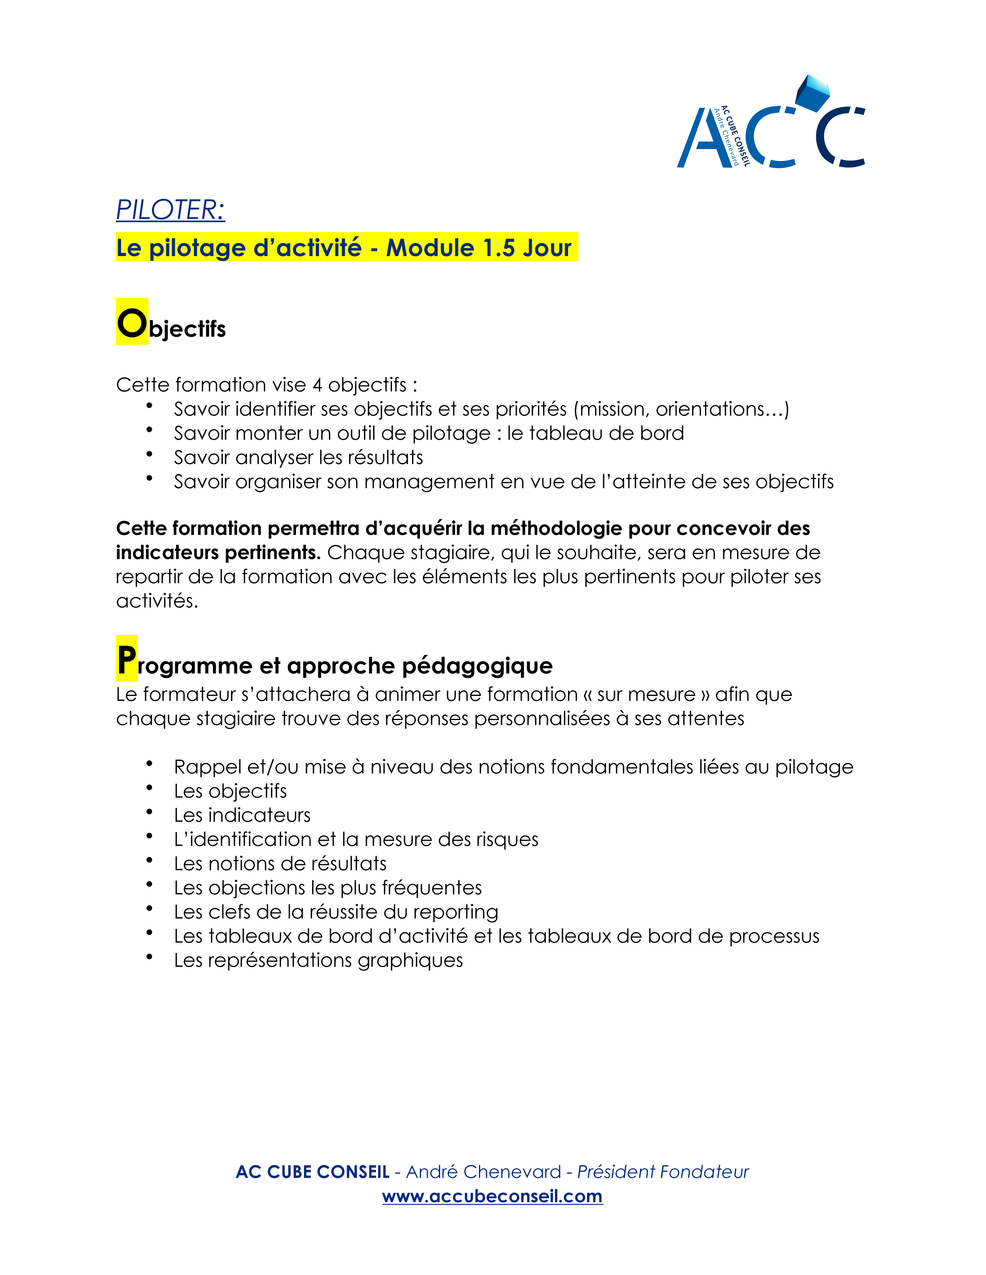 AC CUBE CONSEIL - PILOTER_Page_1.png